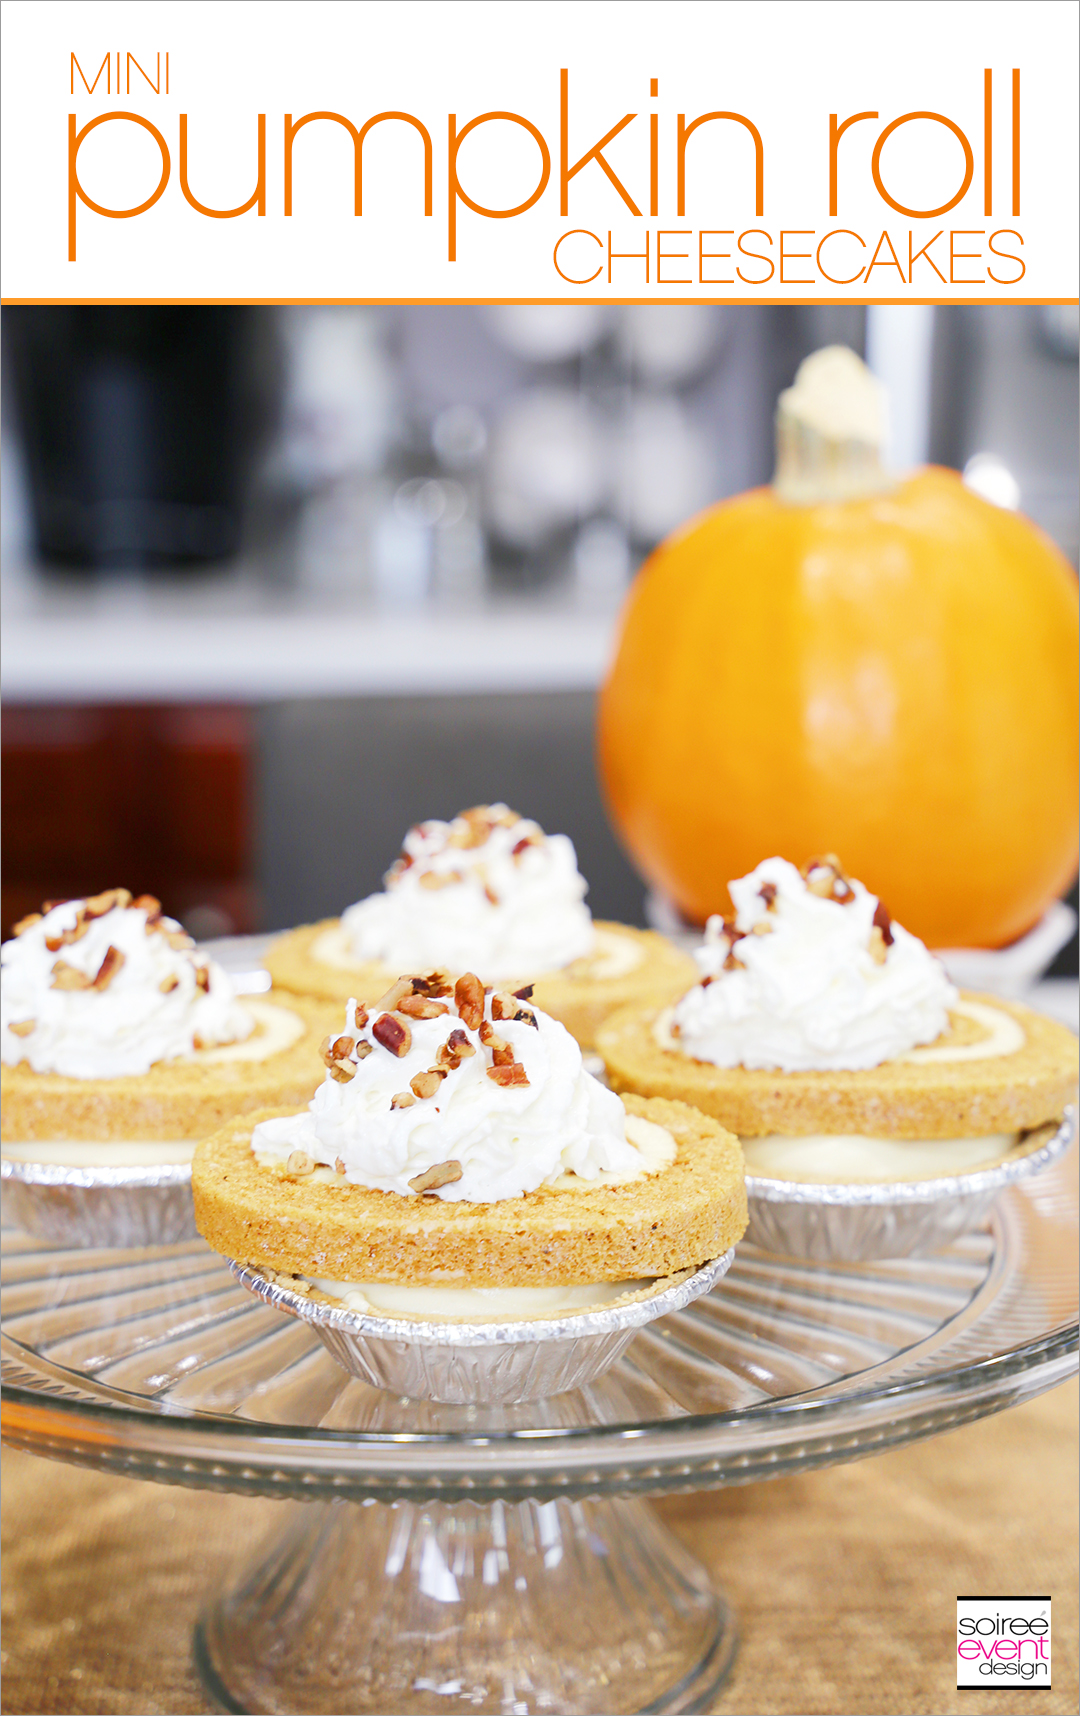 Mini Pumpkin Roll Cheesecakes recipe